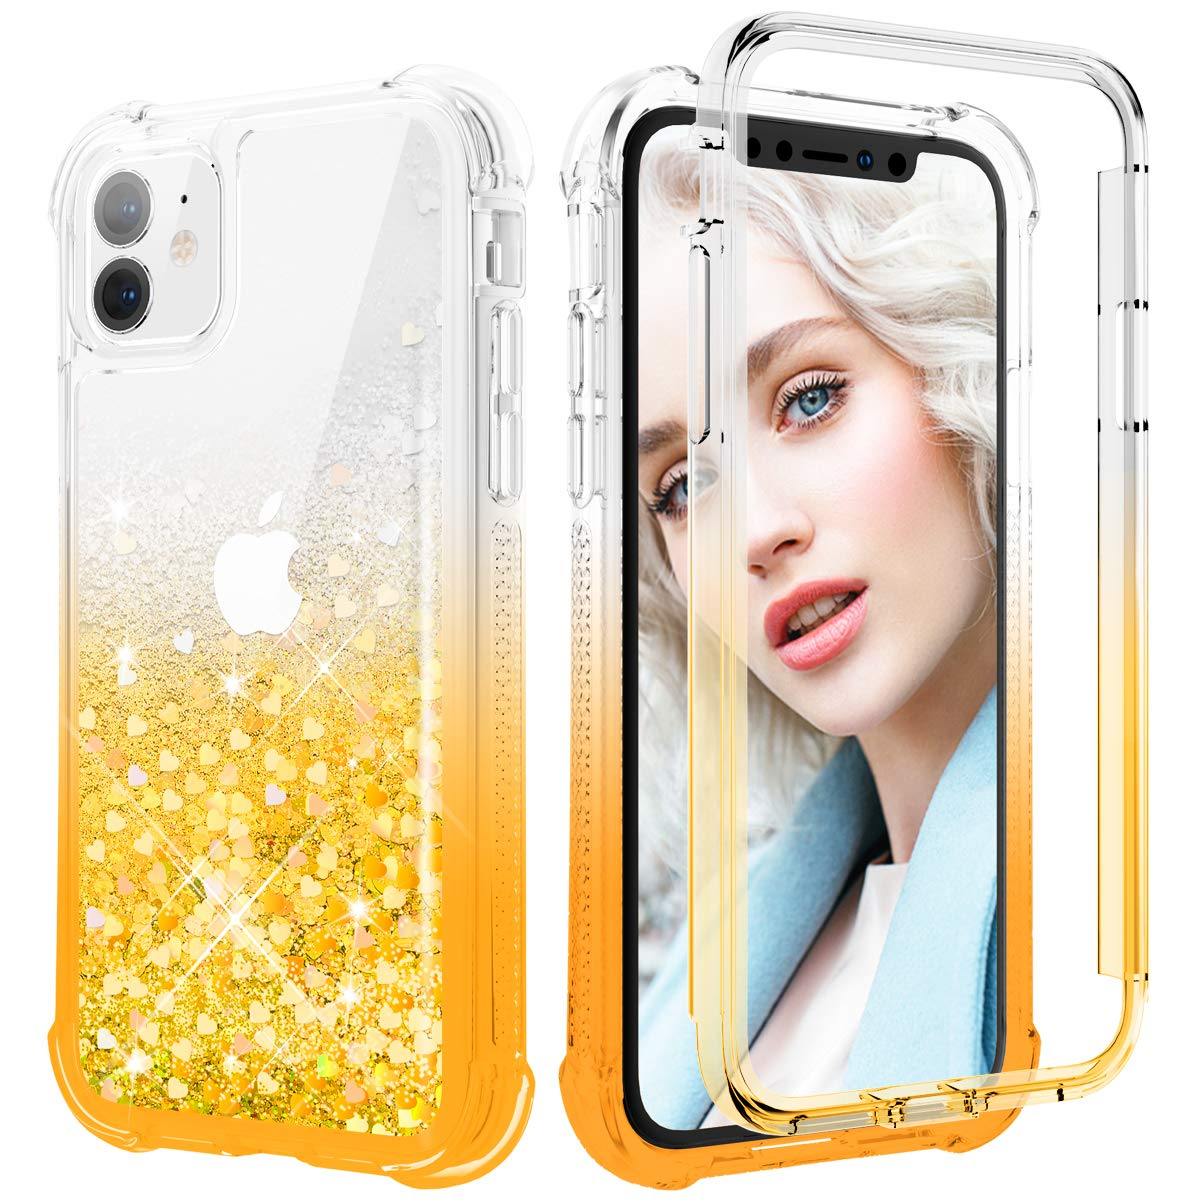 Maxdara for iPhone 11 Glitter Case, iPhone 11 Full-Body Case with Built-in Screen Protector BlingLiquid Rugged Shockproof Protective Case Cover for iPhone 11 6.1 inches (Gradient Gold)